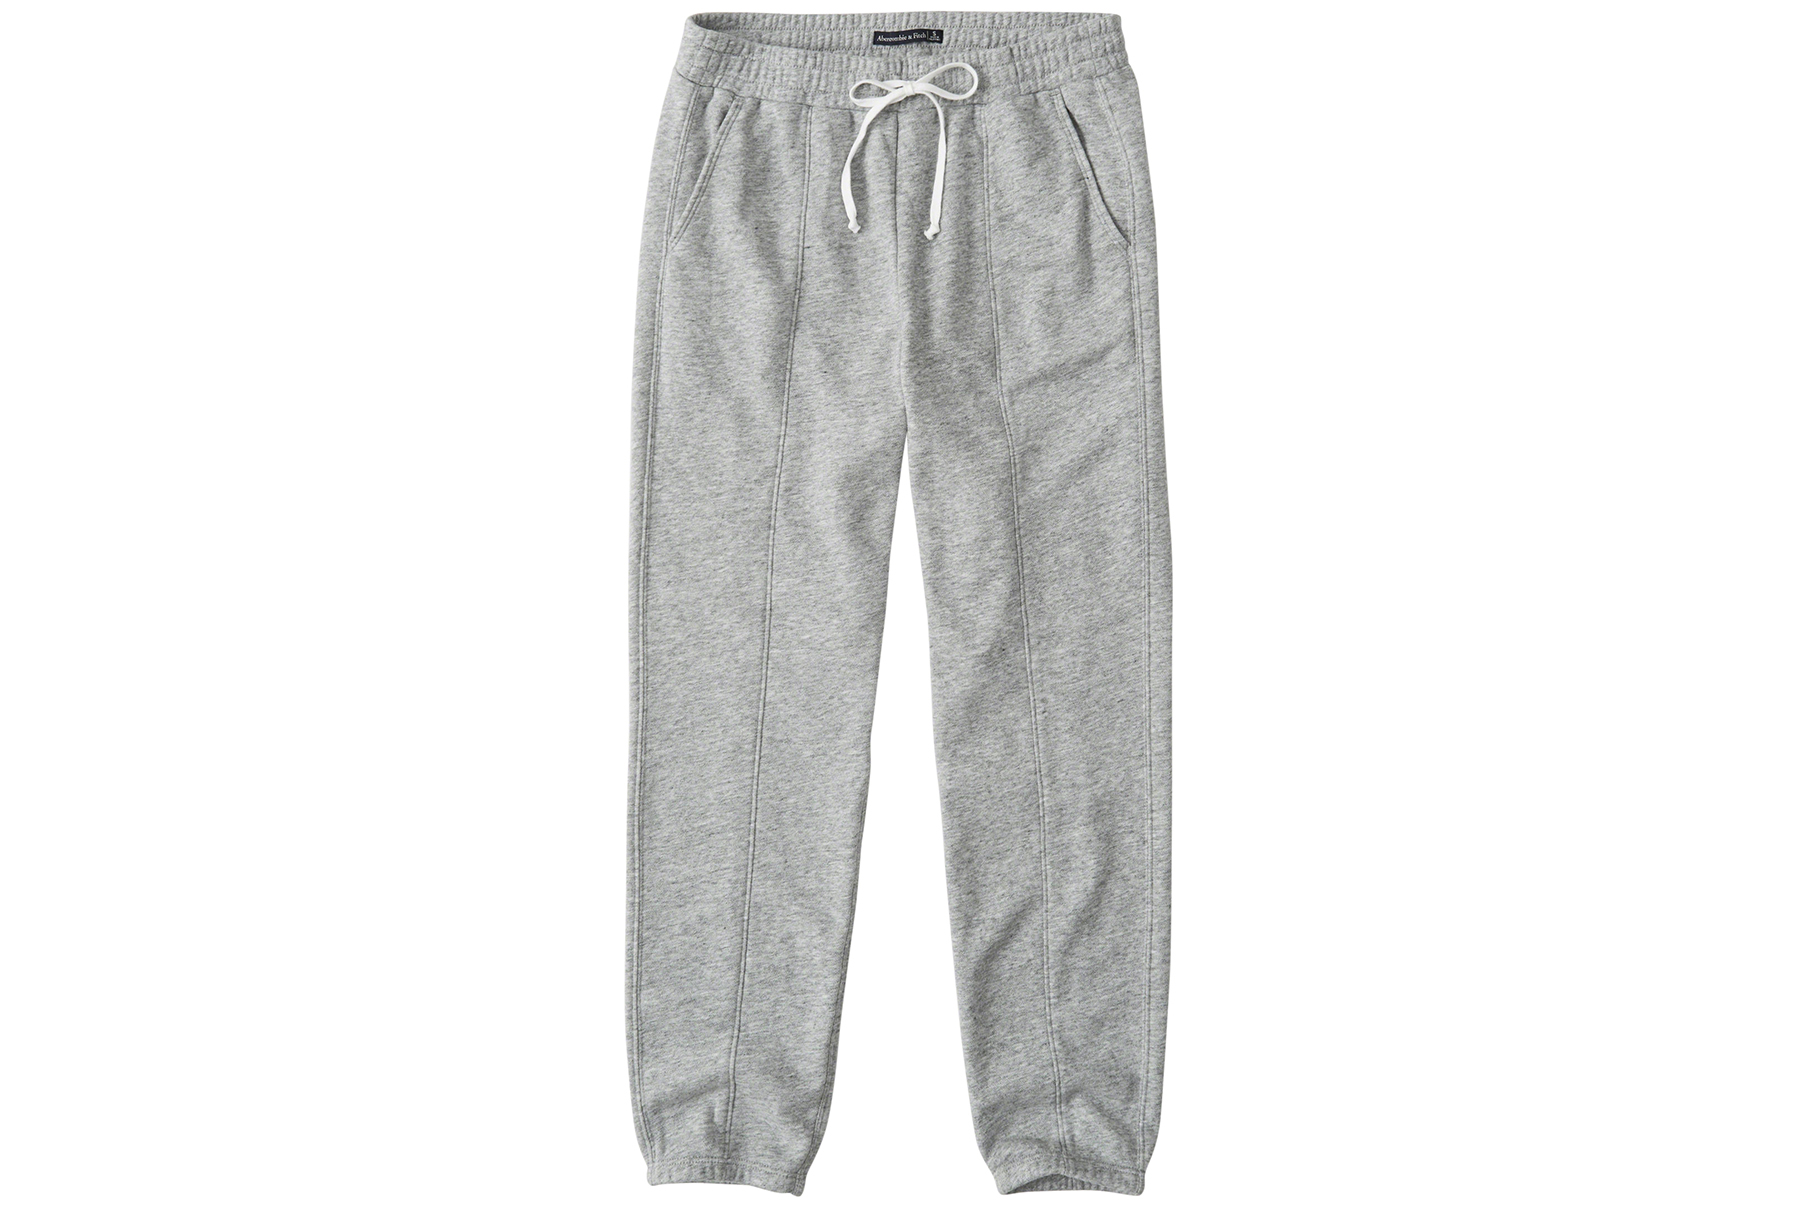 Abercrombie & Fitch High-Rise Trouser Sweatpants